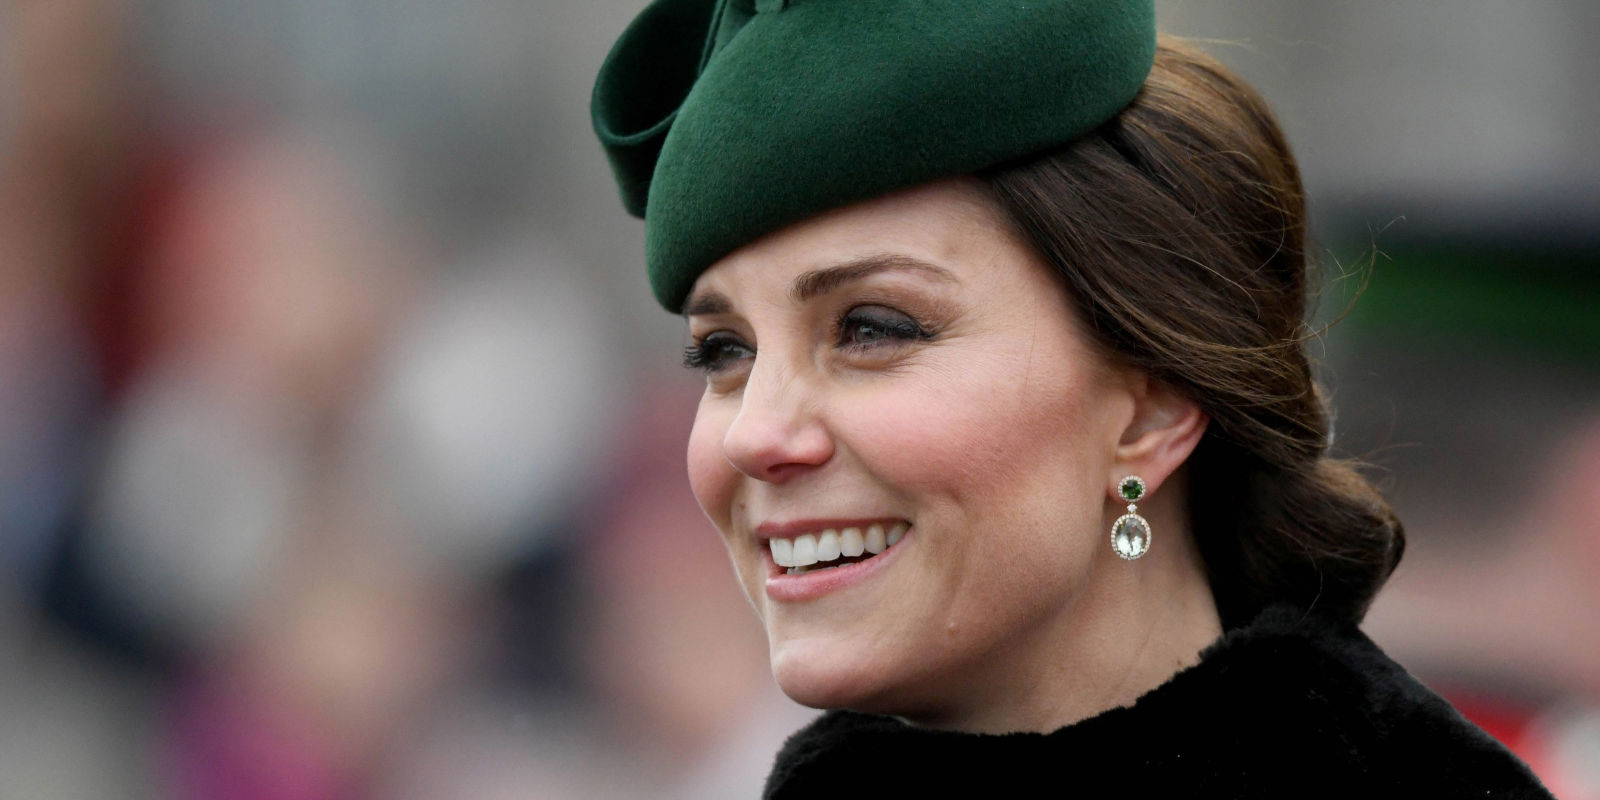 Kate Middleton And Her Baby Bump Were The Cutest In Emerald Green On St. Patrick's Day